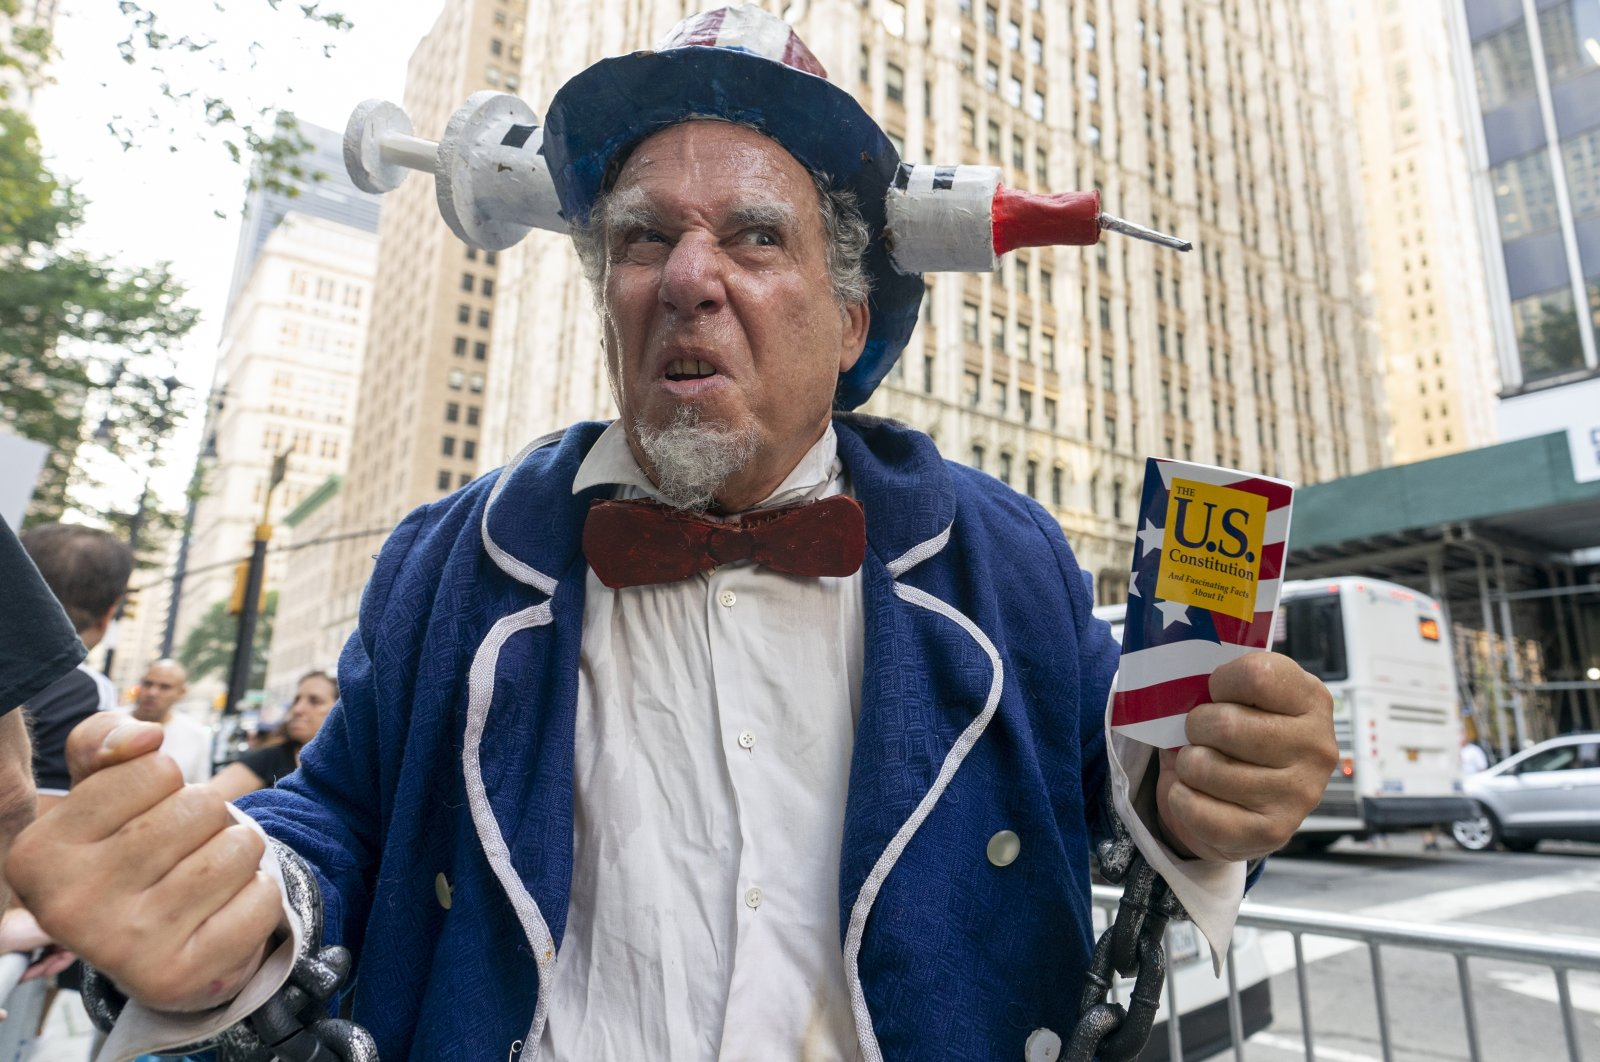 A protester wears an Uncle Sam outfit at a demonstration against COVID-19 vaccination mandates, in New York, U.S, Aug. 25, 2021. (AP Photo)